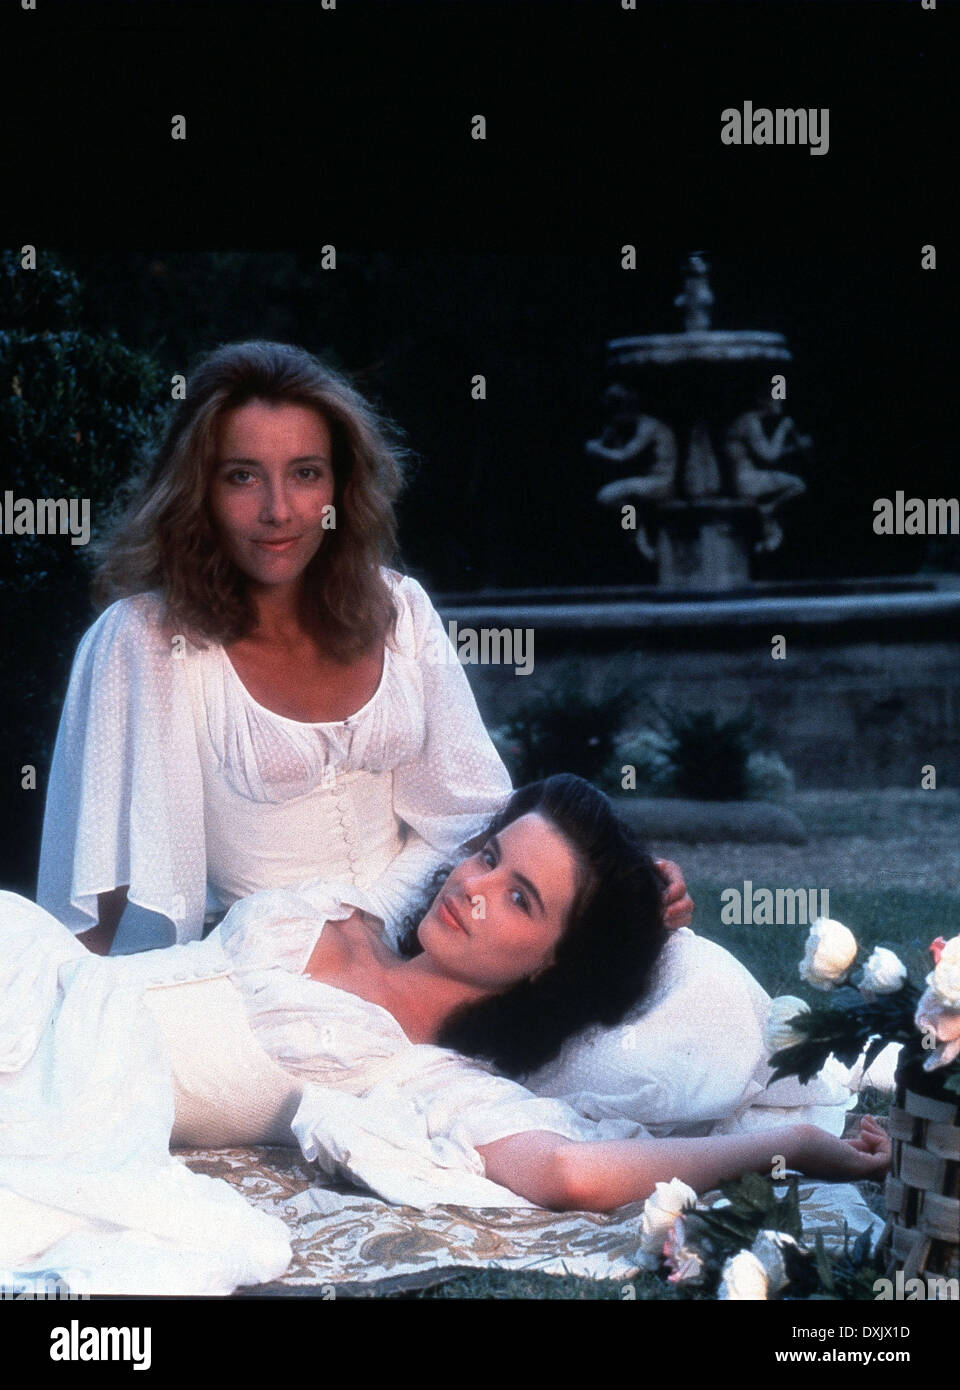 MUCH ADO ABOUT NOTHING (US/UK 1993) BBC/RENAISSANCE FILMS/SA - Stock Image